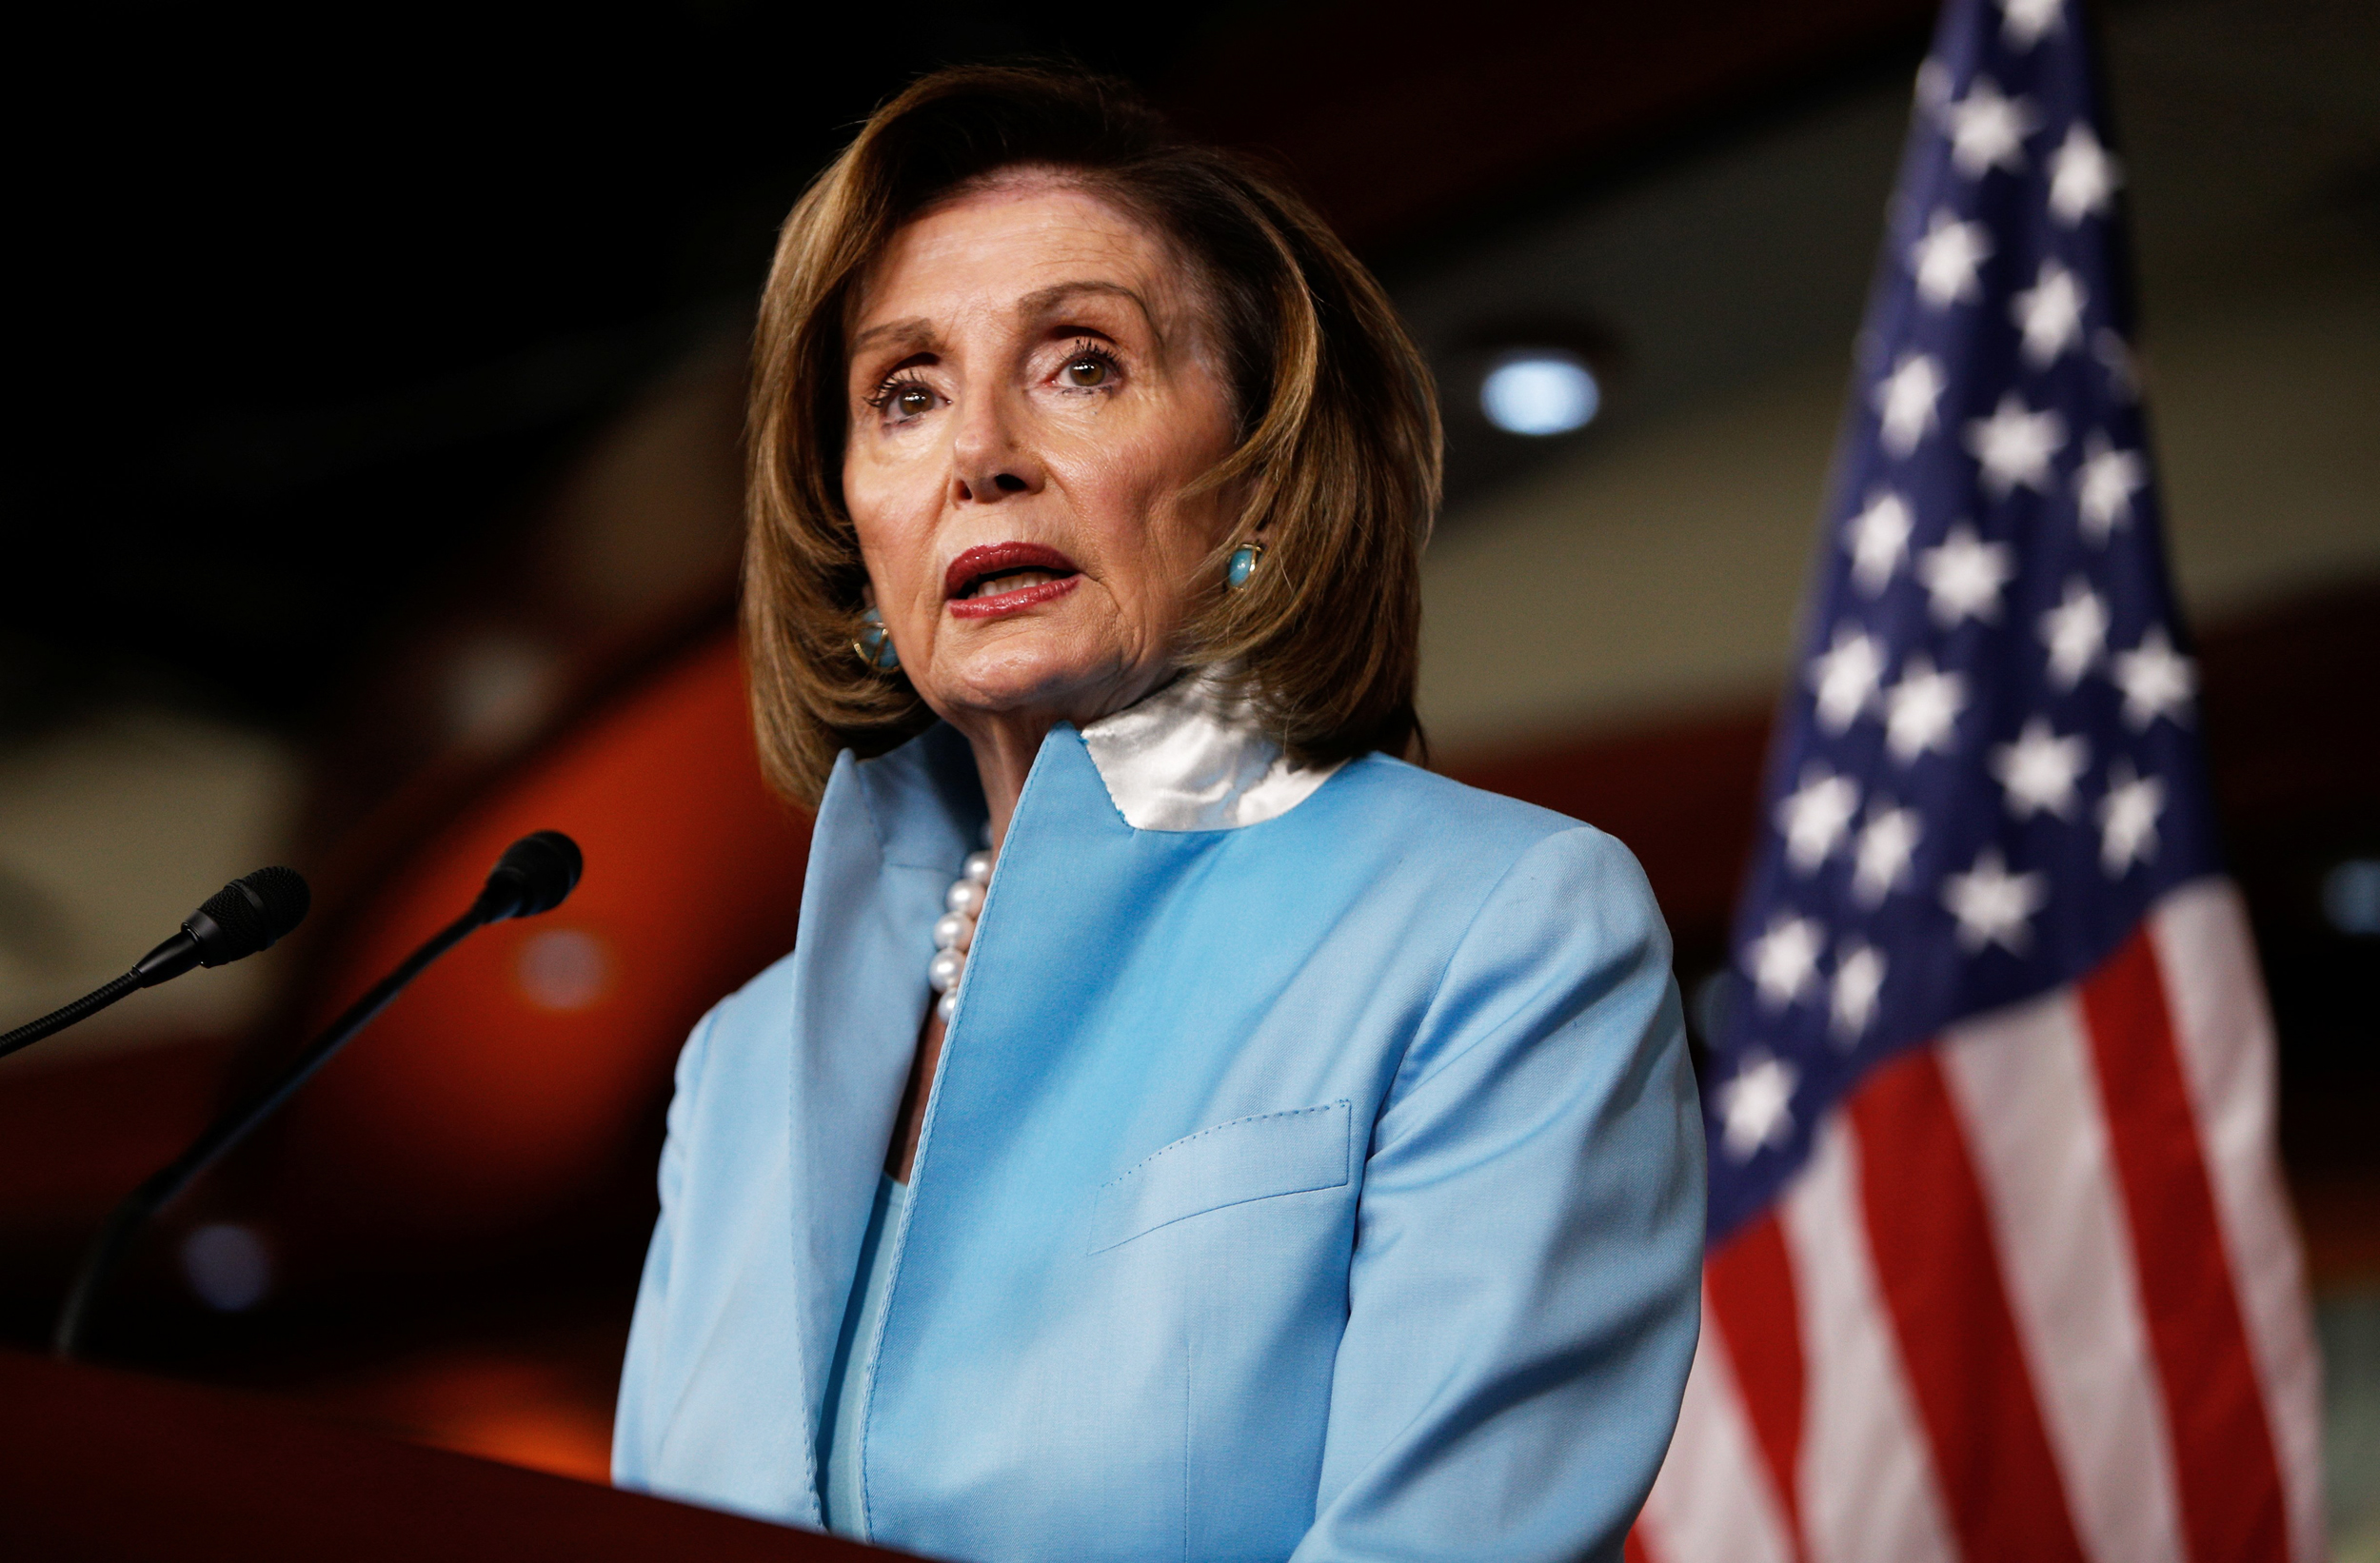 Amid turmoil, Democrats delay House vote on infrastructure and budget bills